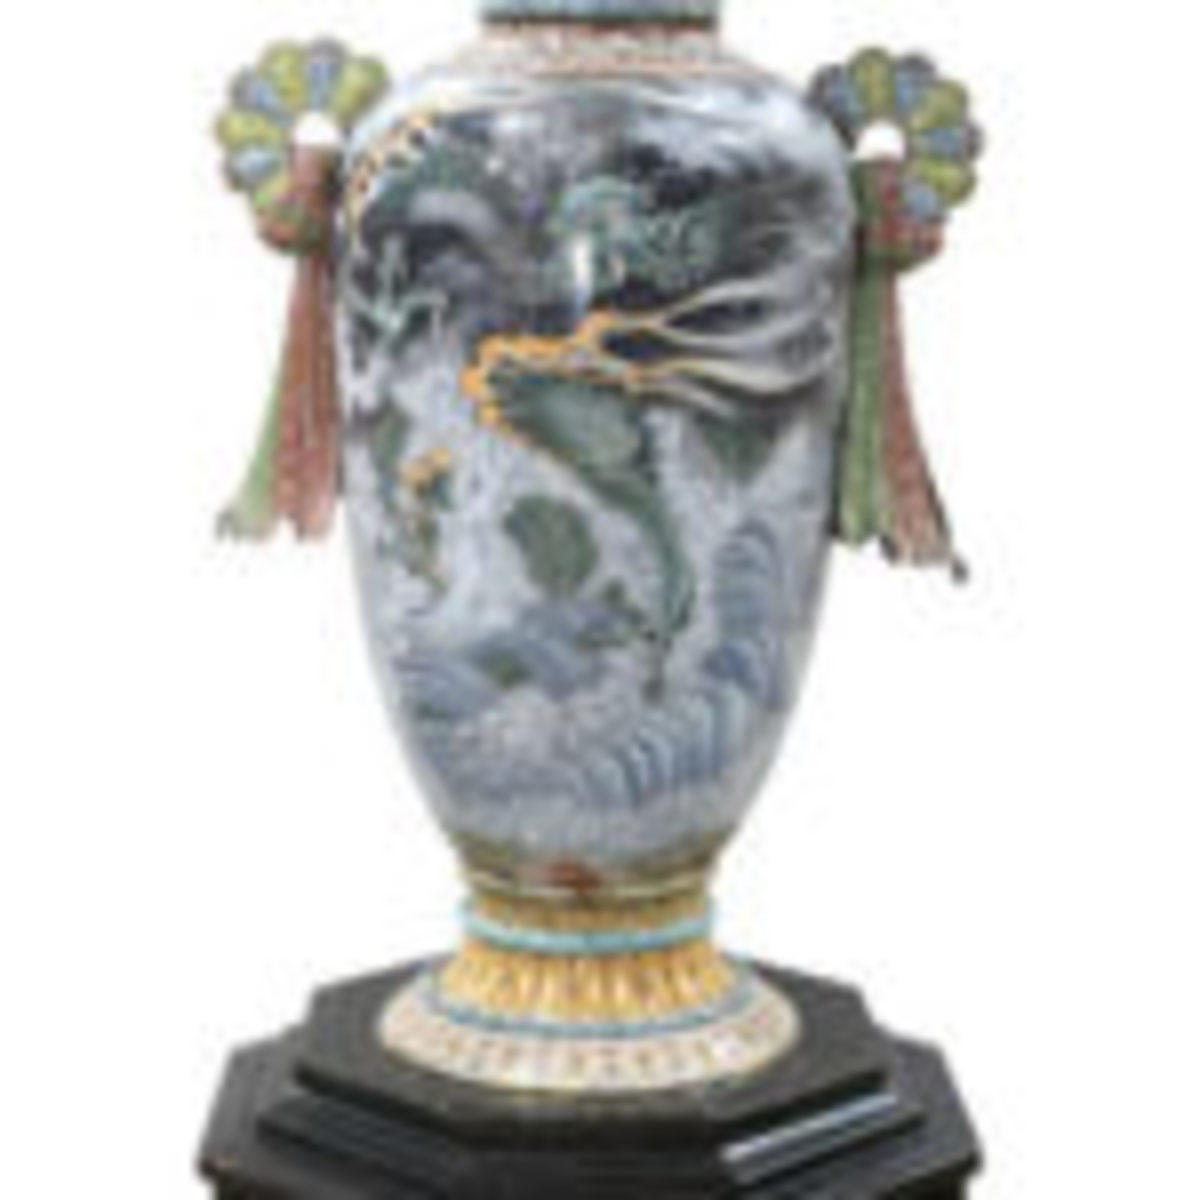 This historic Japanese cloisonné vase exhibited at the 1893 Chicago World's Fair more than doubled its high estimate selling to a private buyer in New York for $135,000.